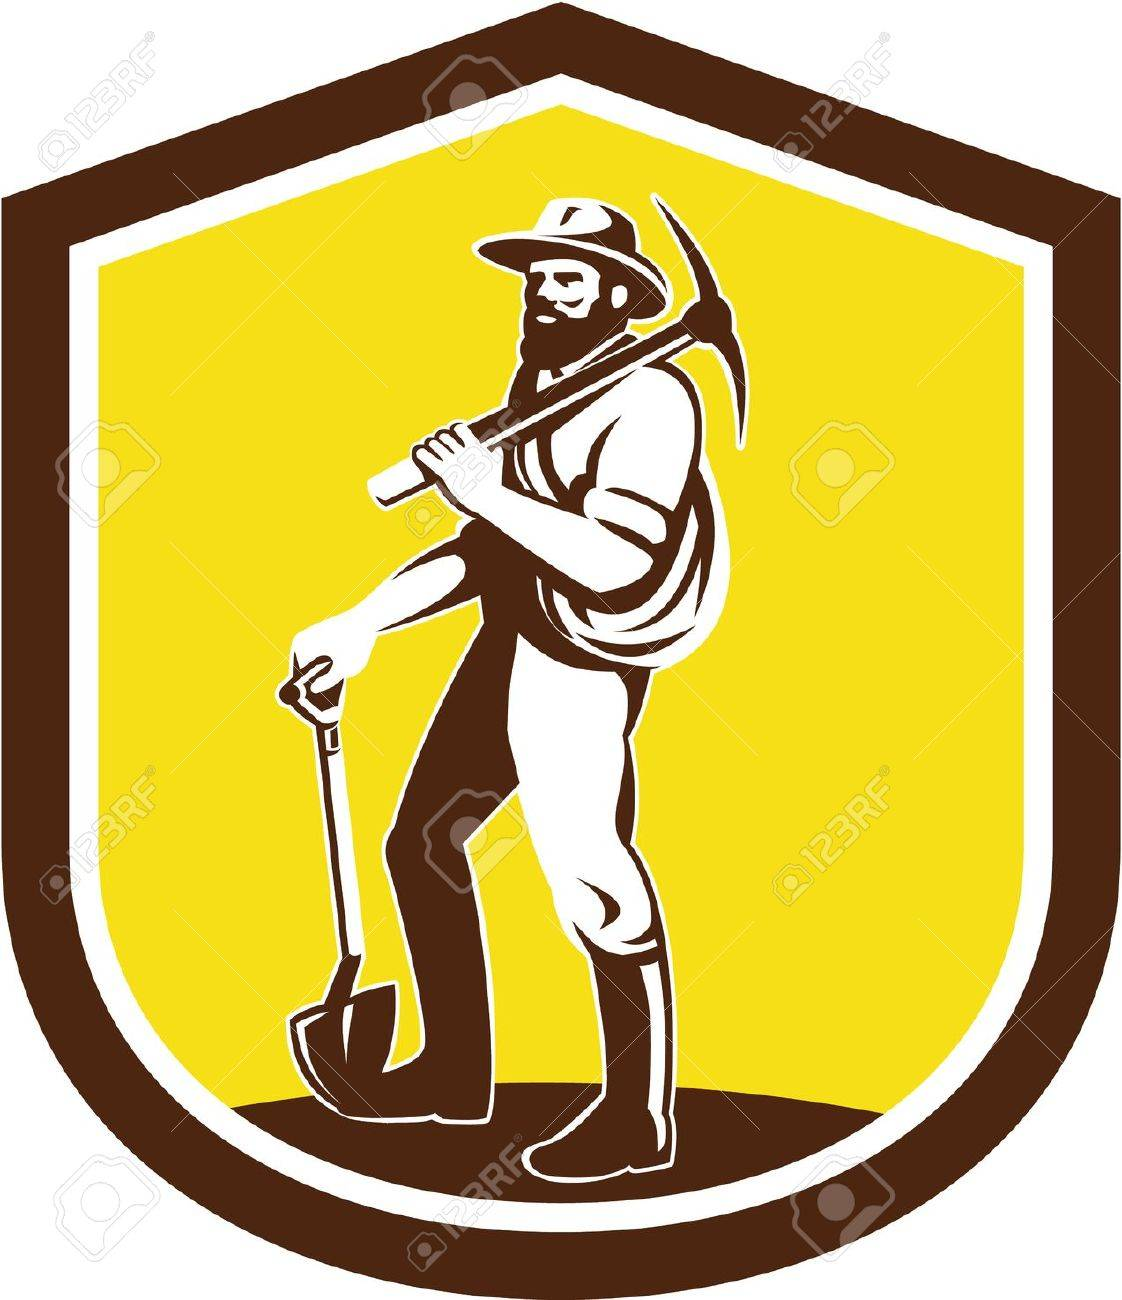 Illustration of a coal miner prospector wearing hat carrying pick axe on shoulder and holding shovel facing front set inside shield crest done in retro style on isolated background. - 28260564